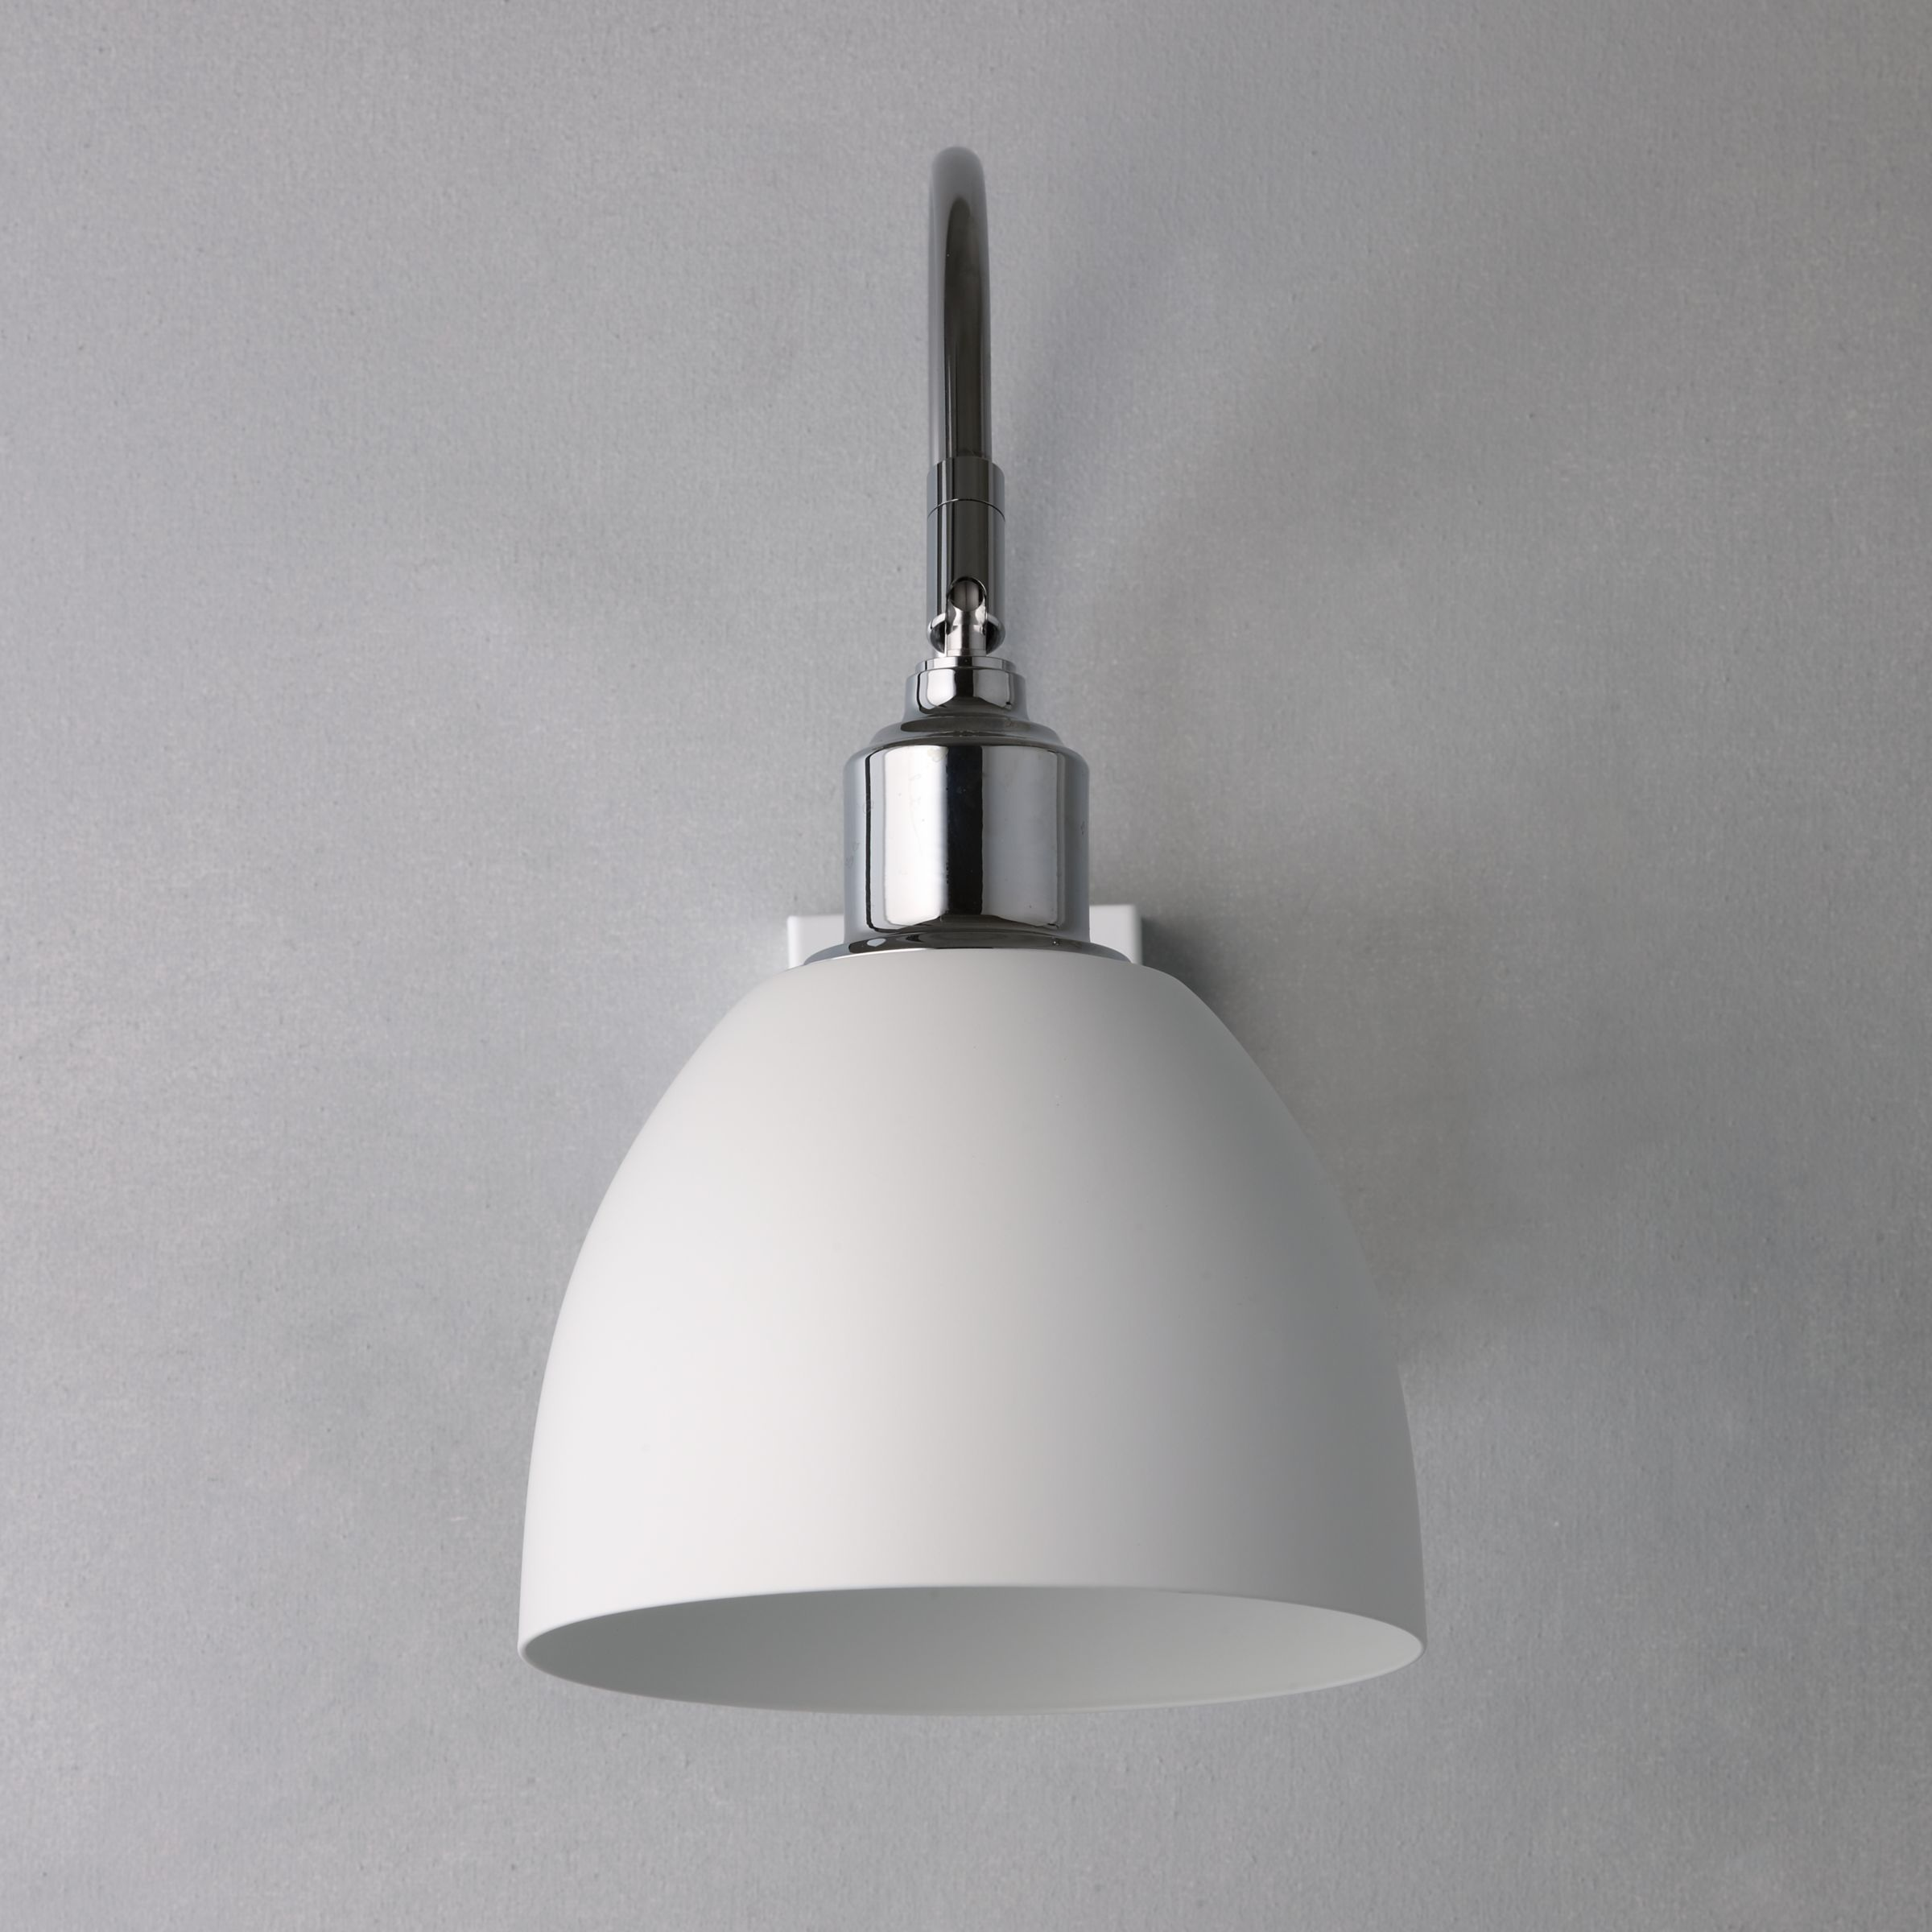 Bathroom Lighting Uk John Lewis Decoration News